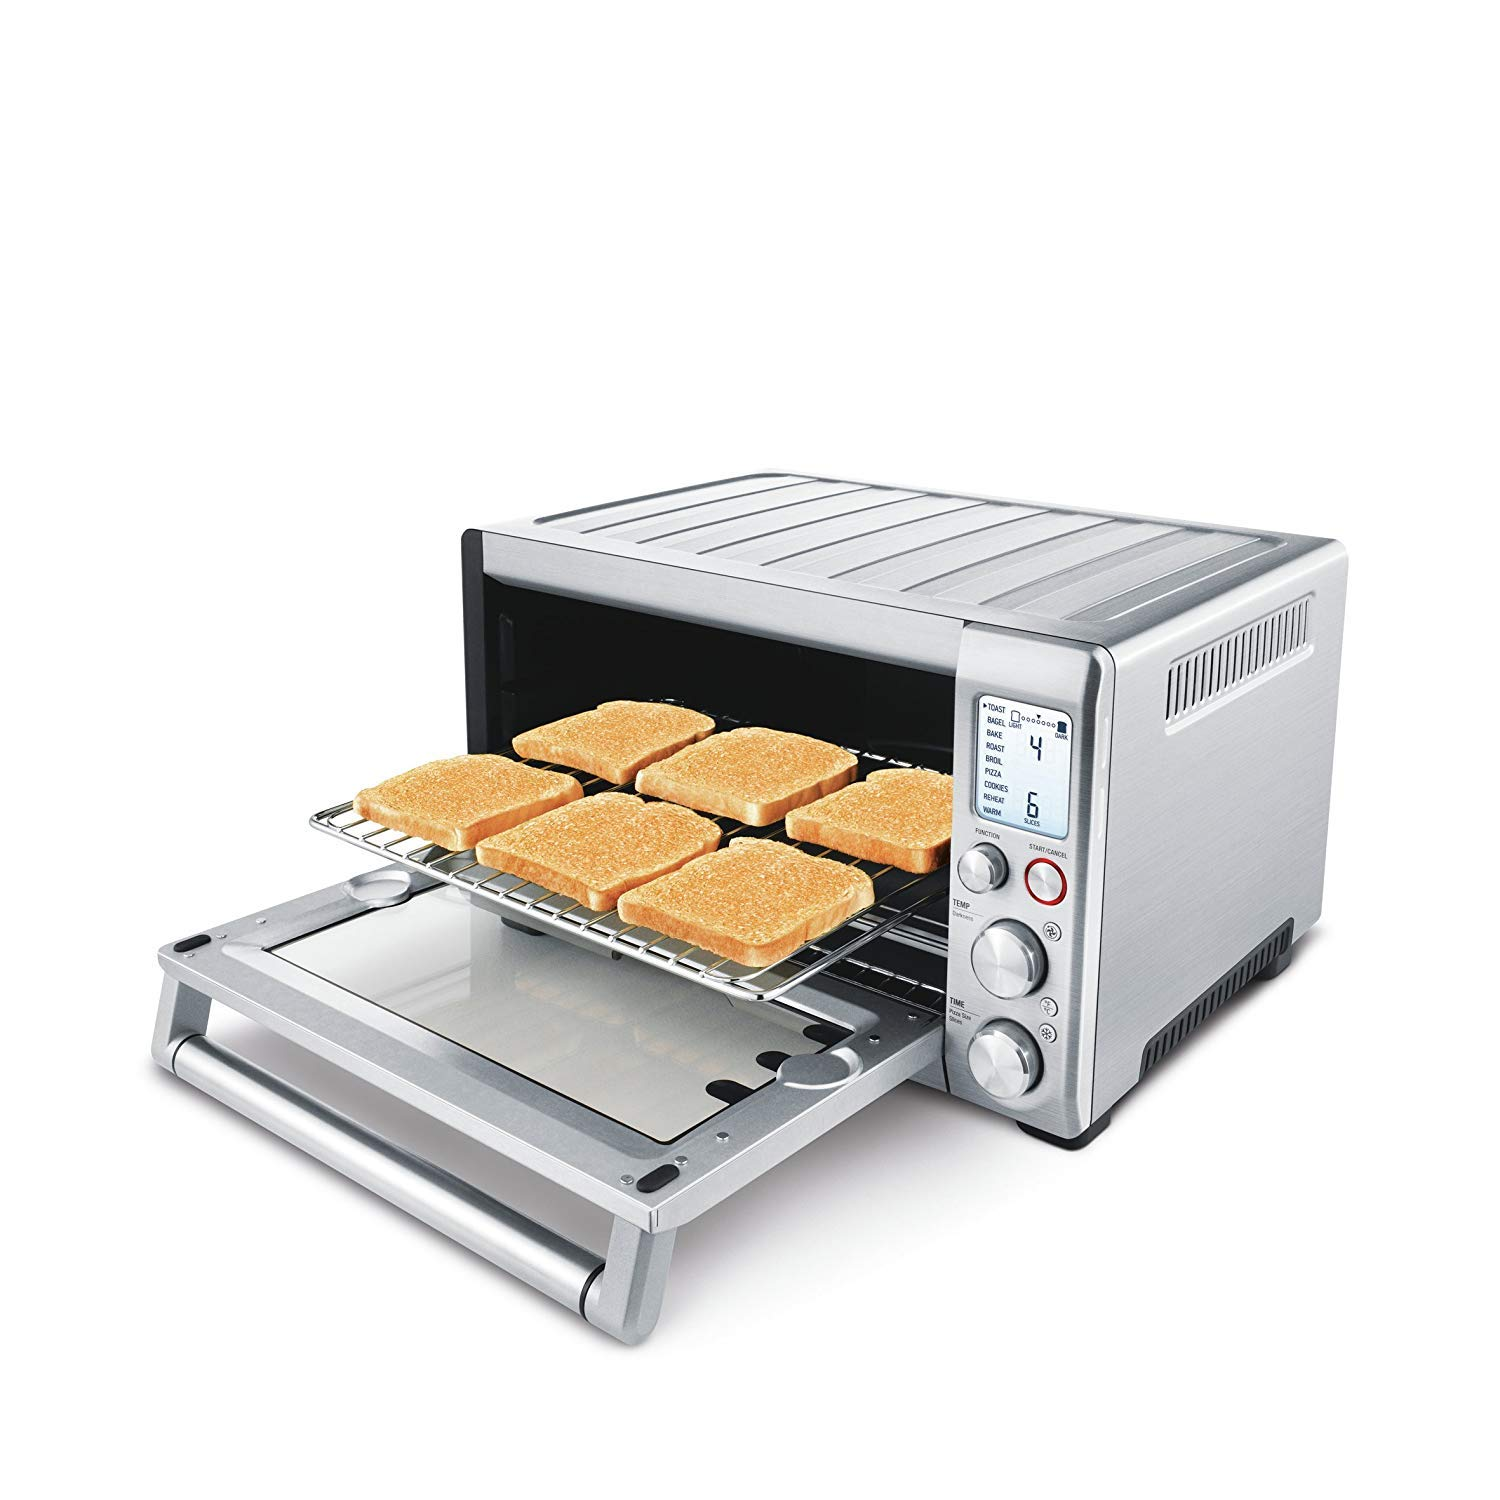 Breville the Smart Oven 1800-Watt Convection Toaster Oven - BOV800XL by Breville (Image #4)